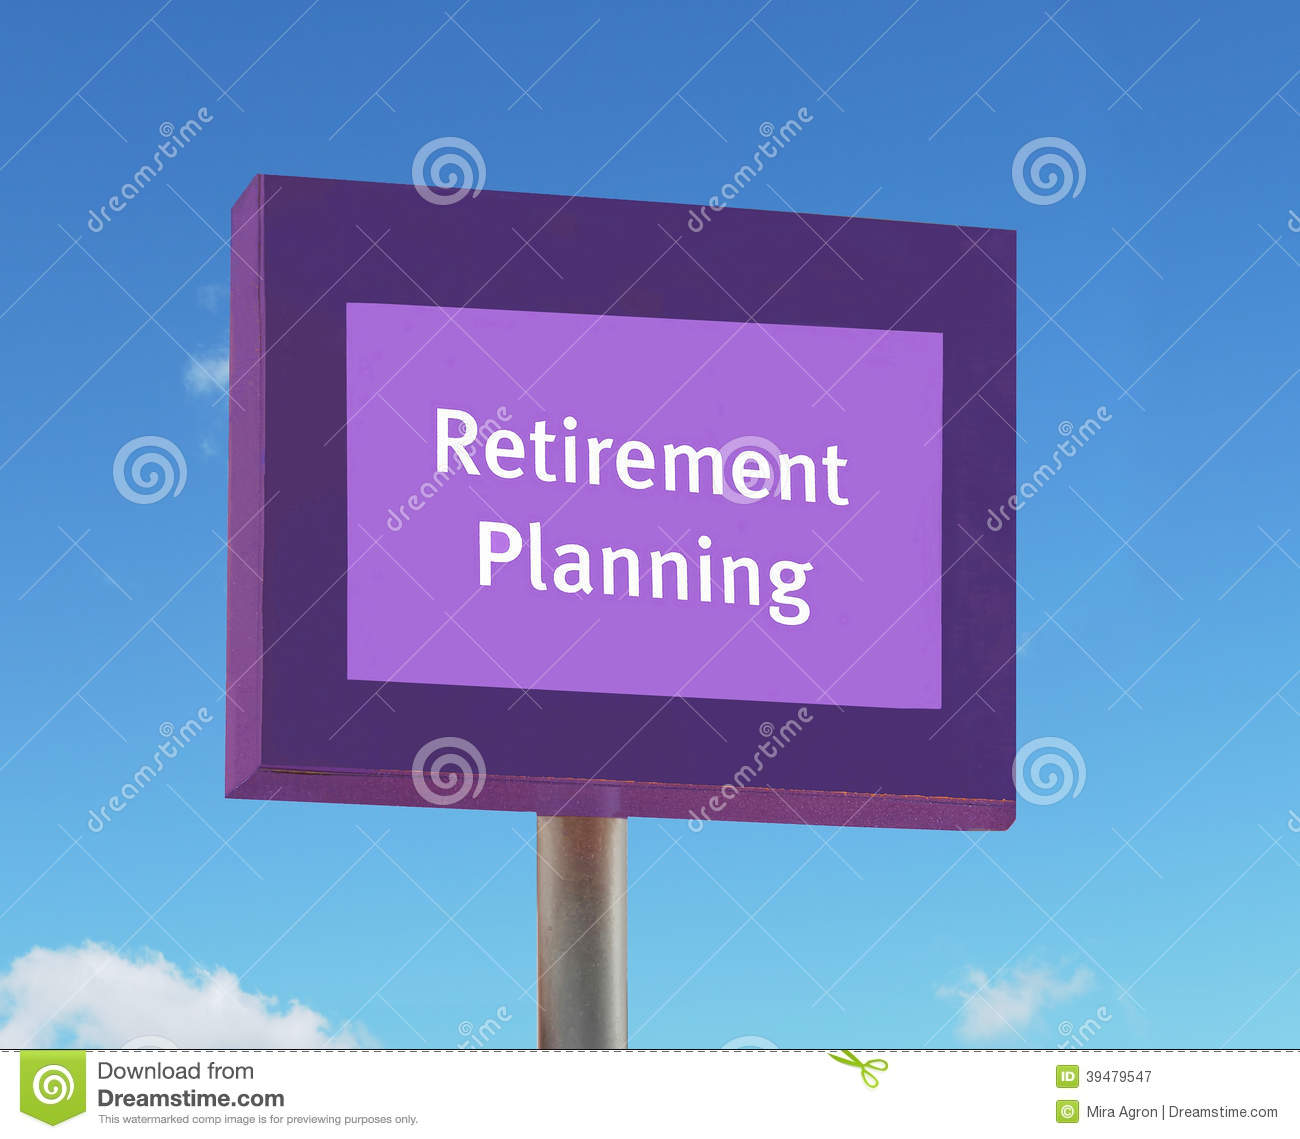 how to choose a retirement planner